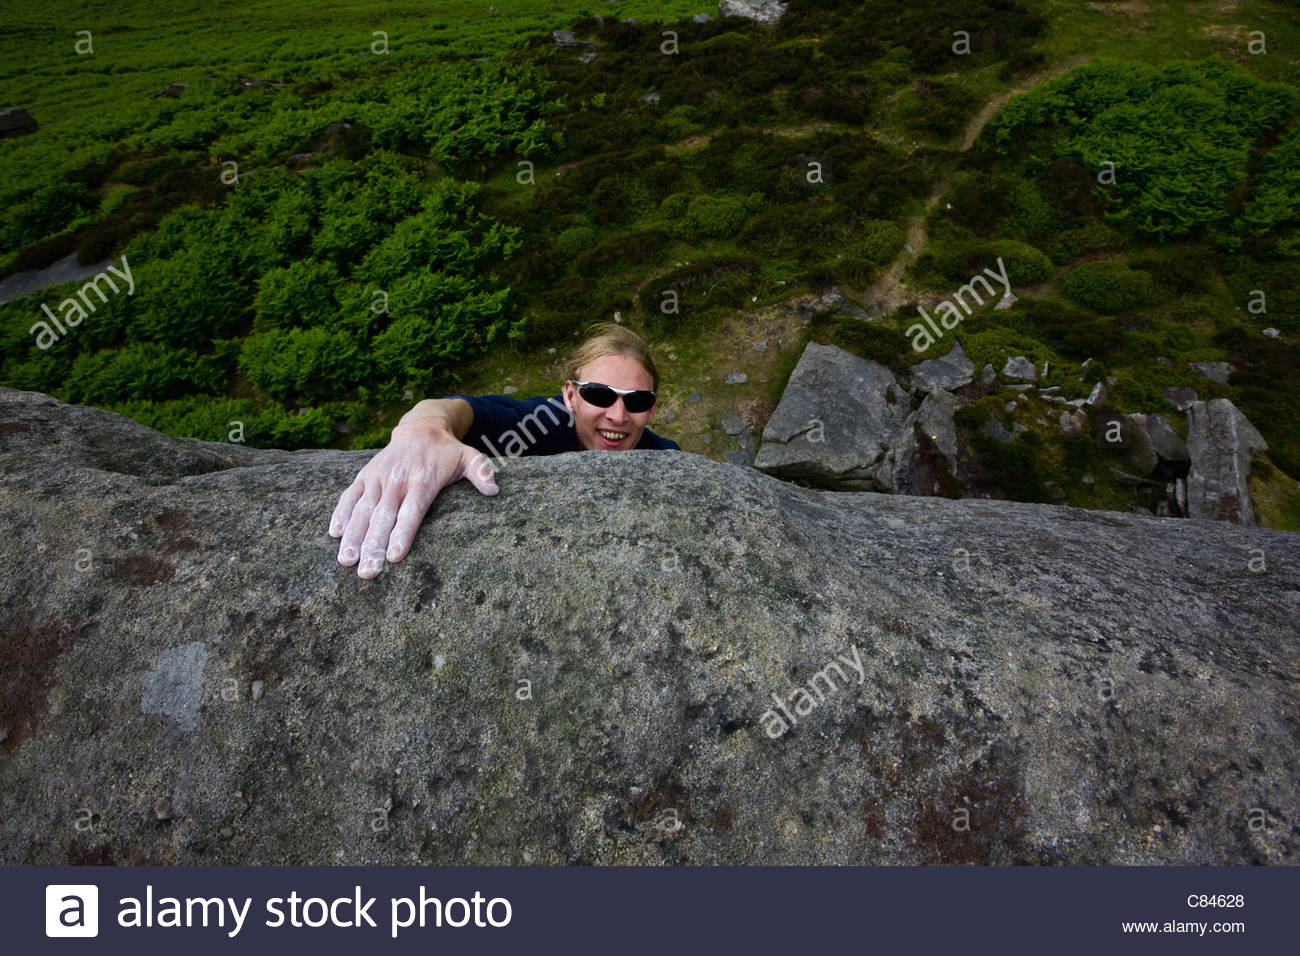 Man climbing steep rock face Photo Stock